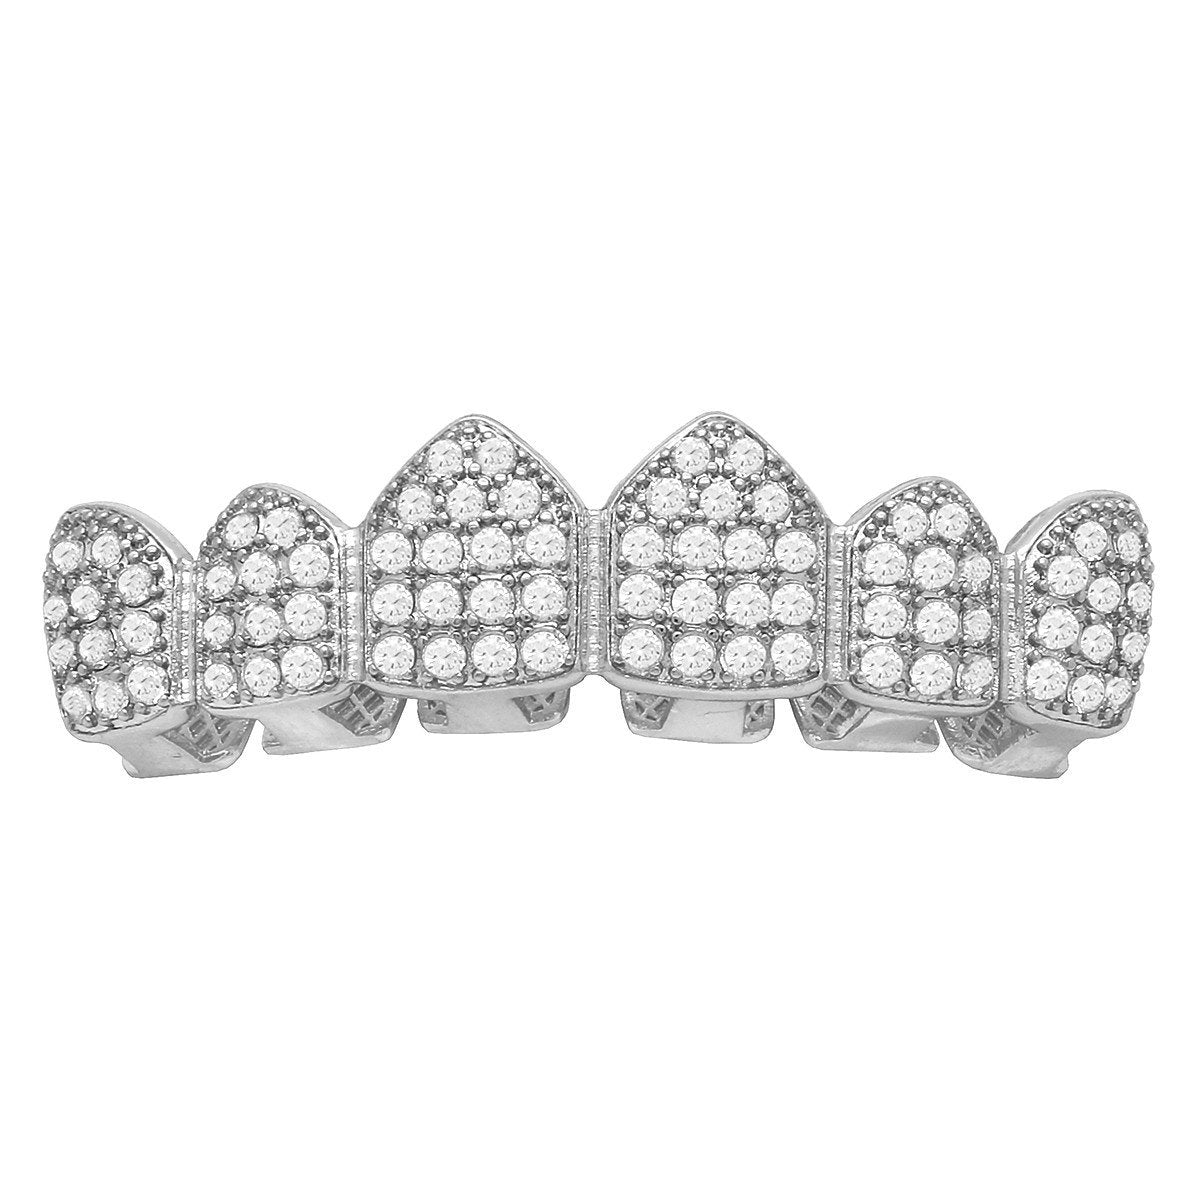 GRILLZ SET WHITE GOLD FULLY ICED OUT